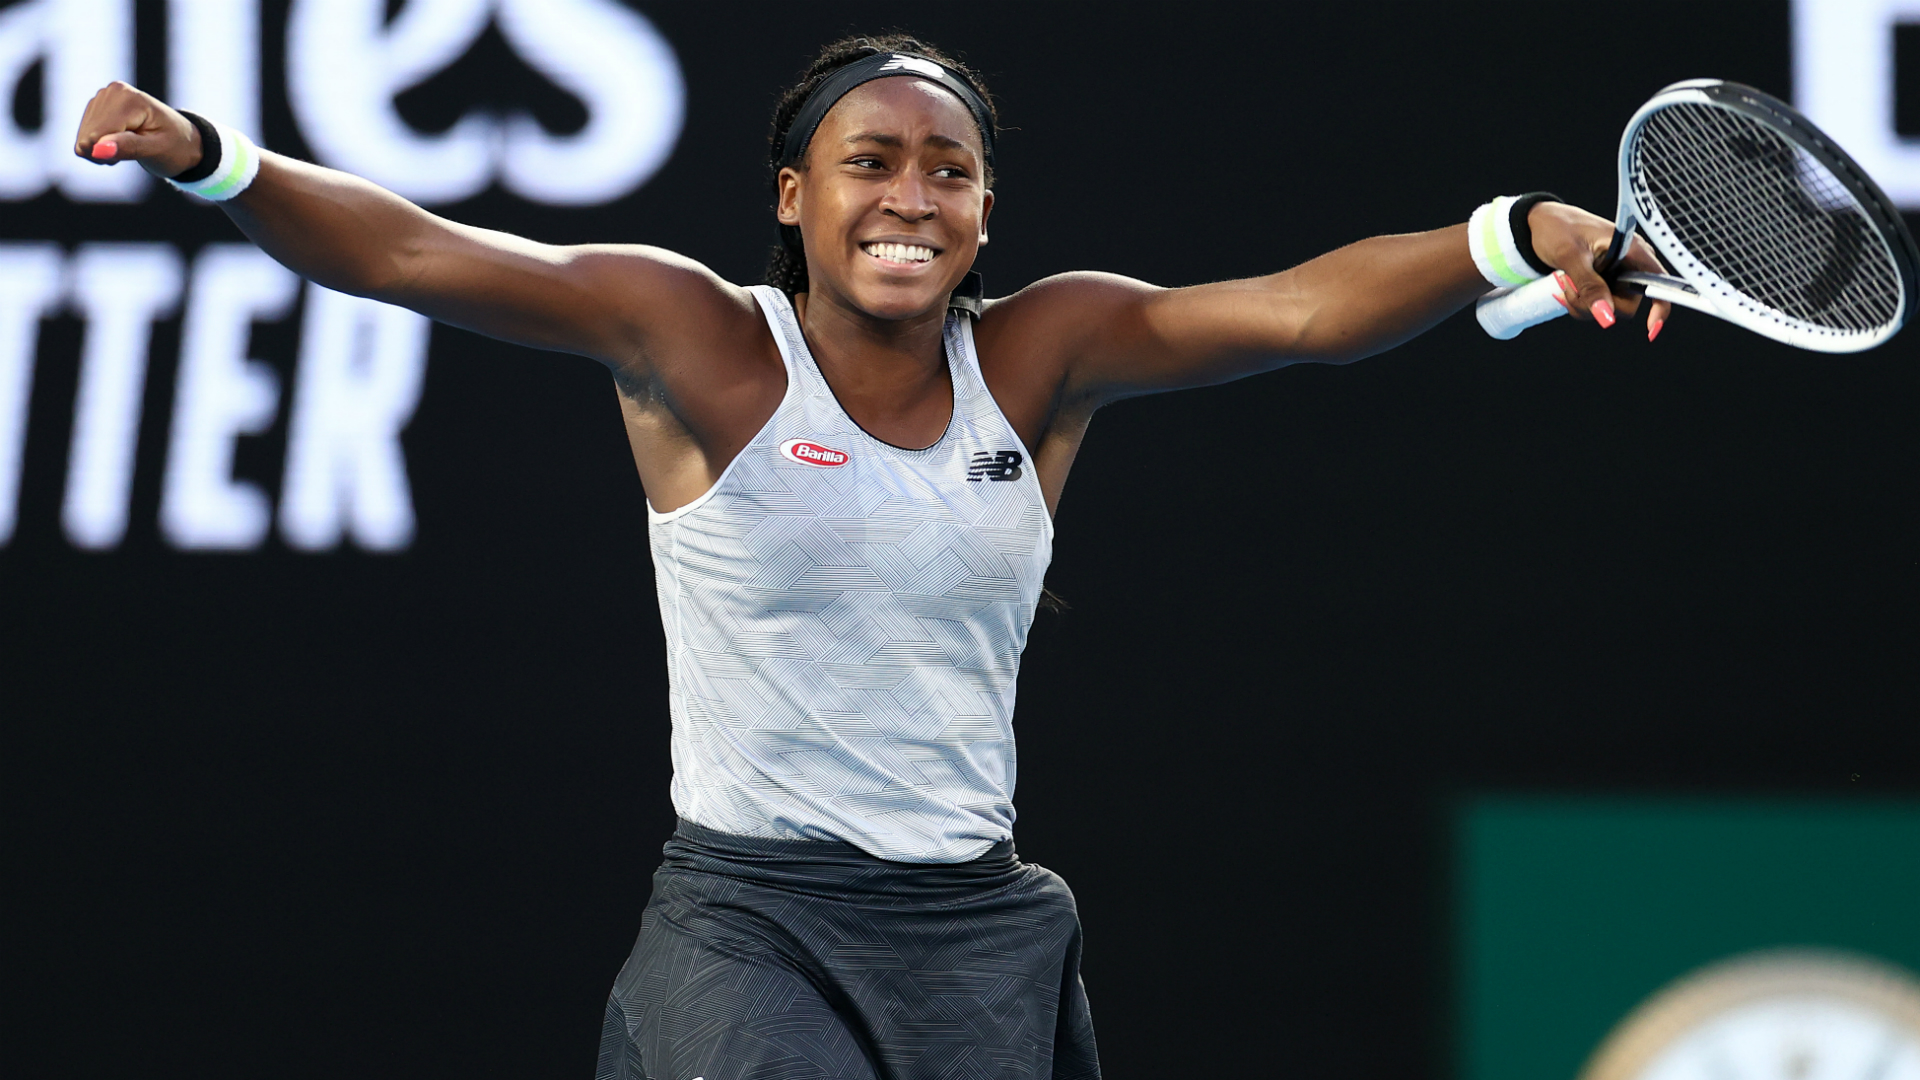 Australian Open 2020: Coco Mania as Gauff eyes more history in Melbourne - sporting news